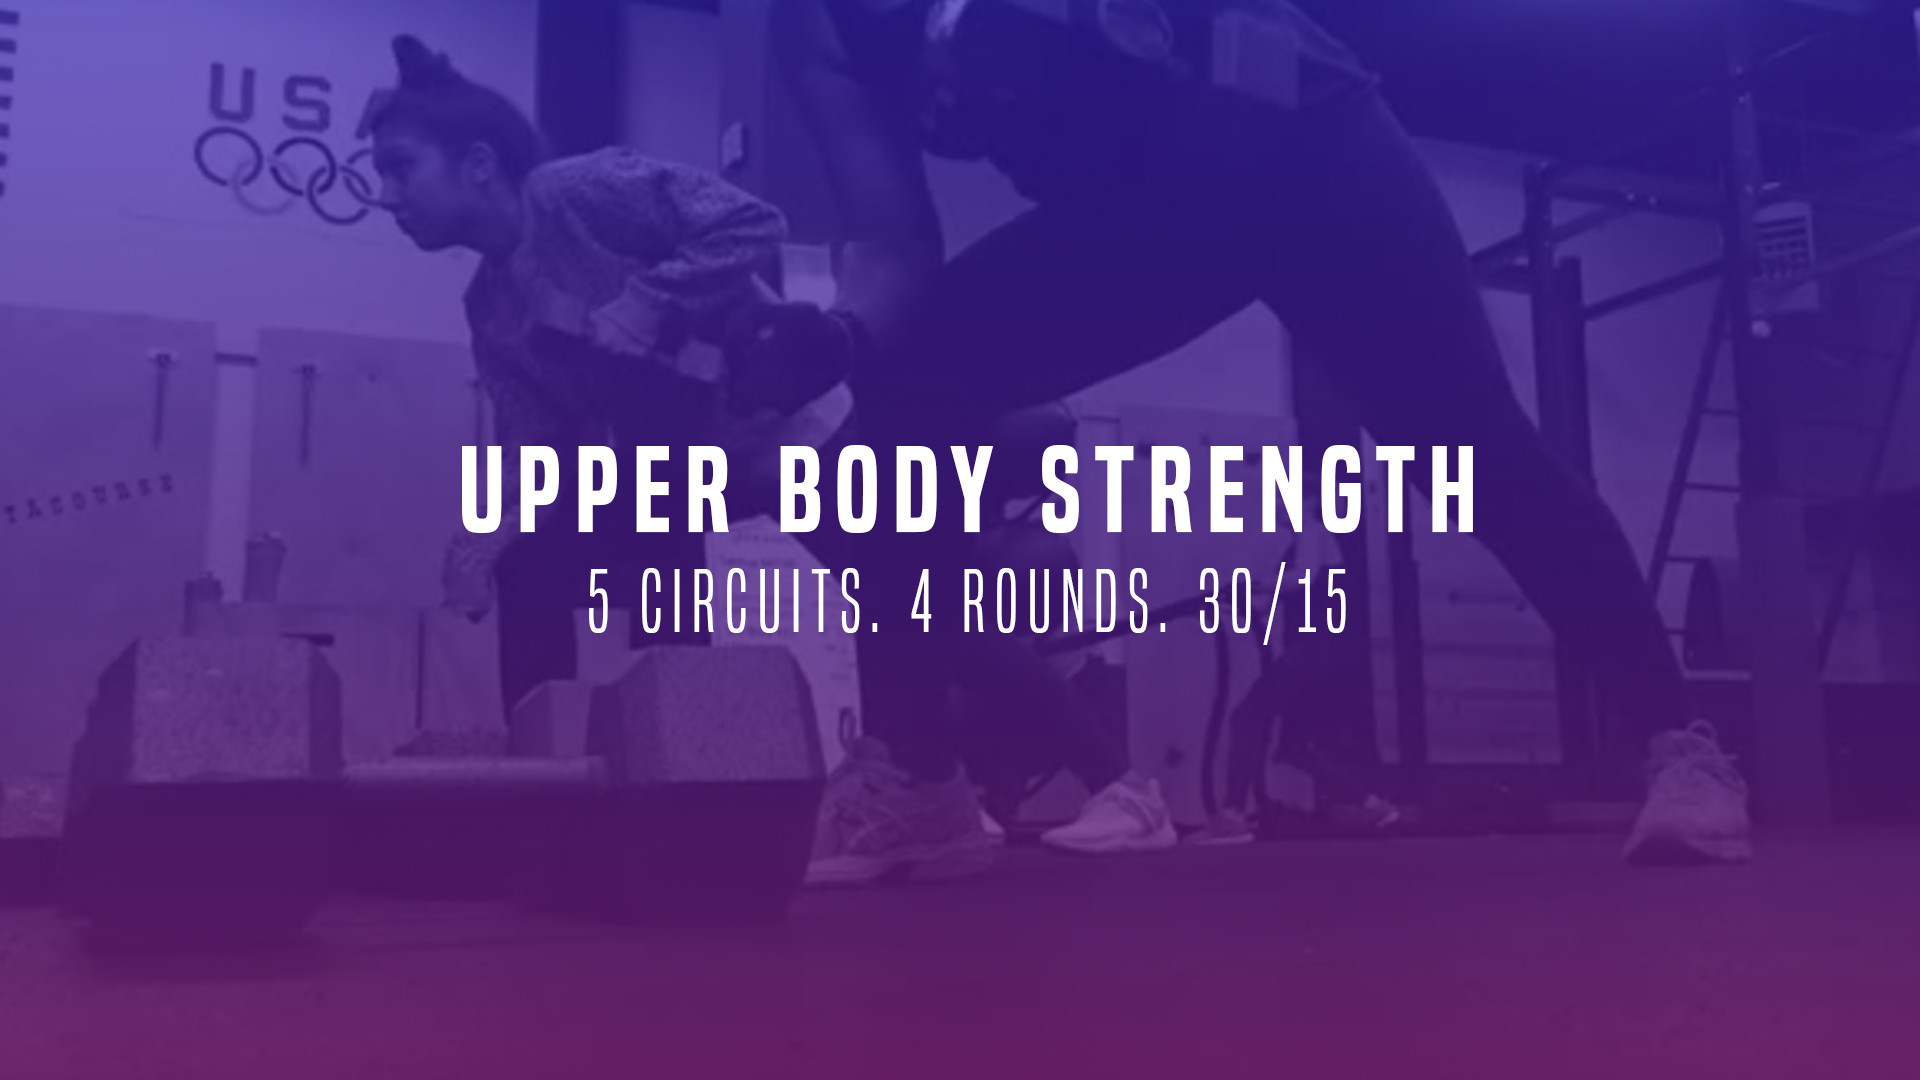 WOD 10: Upper Body Strength. 5 Circuits. 4 Rounds. 30/15